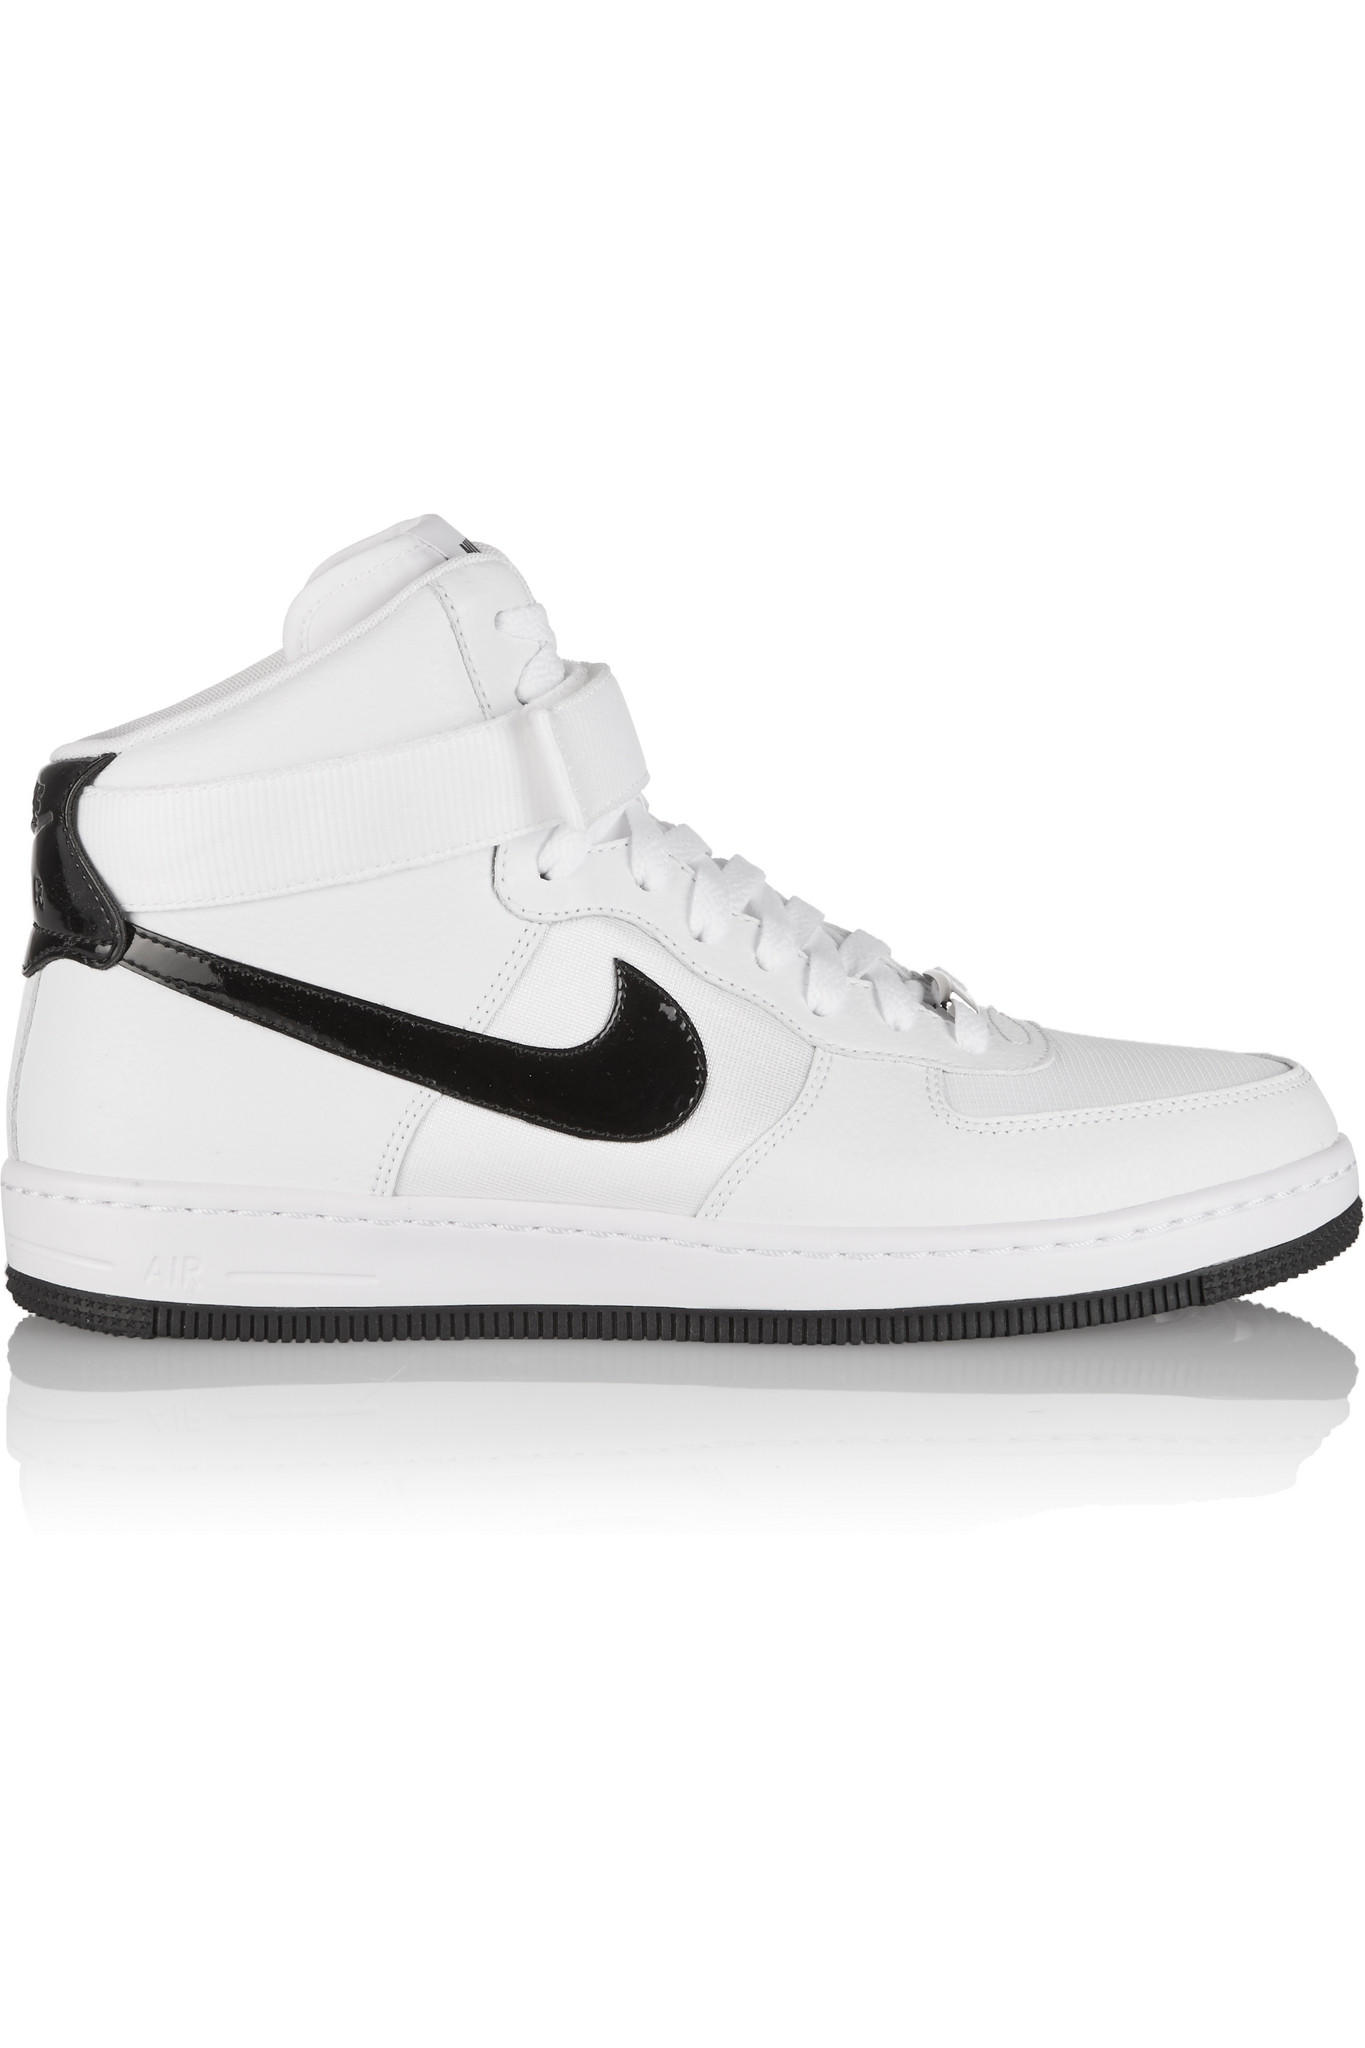 Nike - Air Force 1 Ultra Force leather from NET-A-PORTER d2ab1f527523